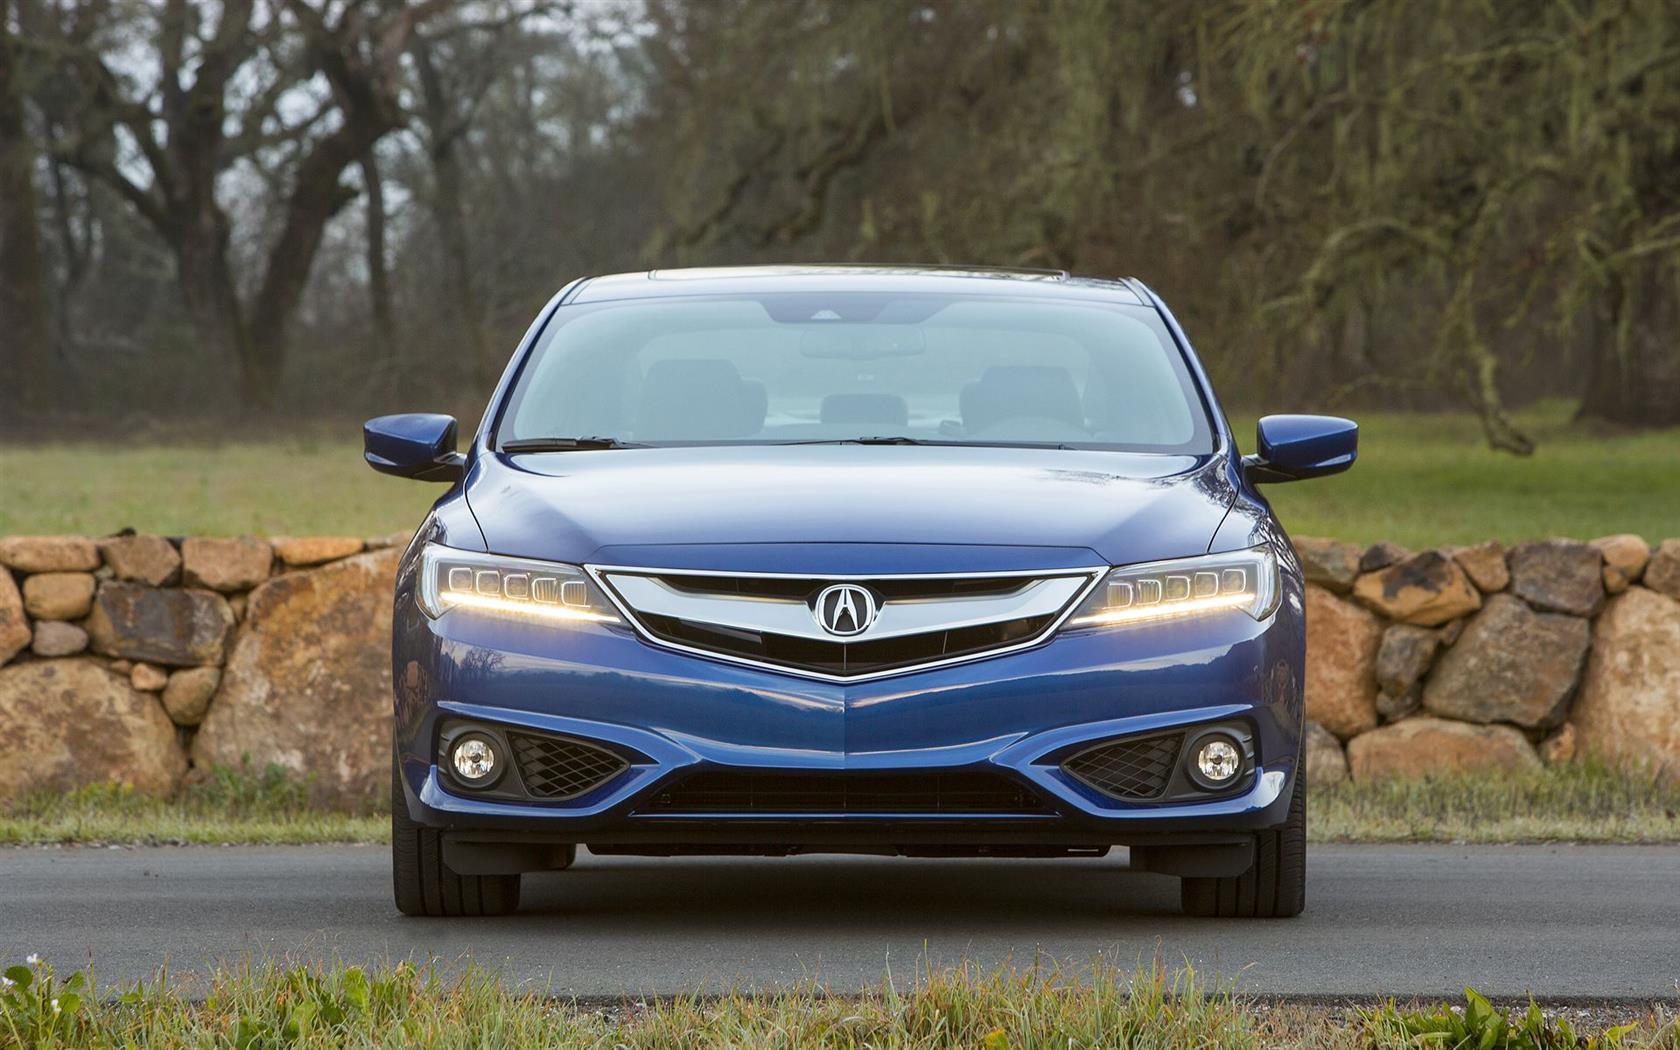 2018 Acura ILX Special Edition Image